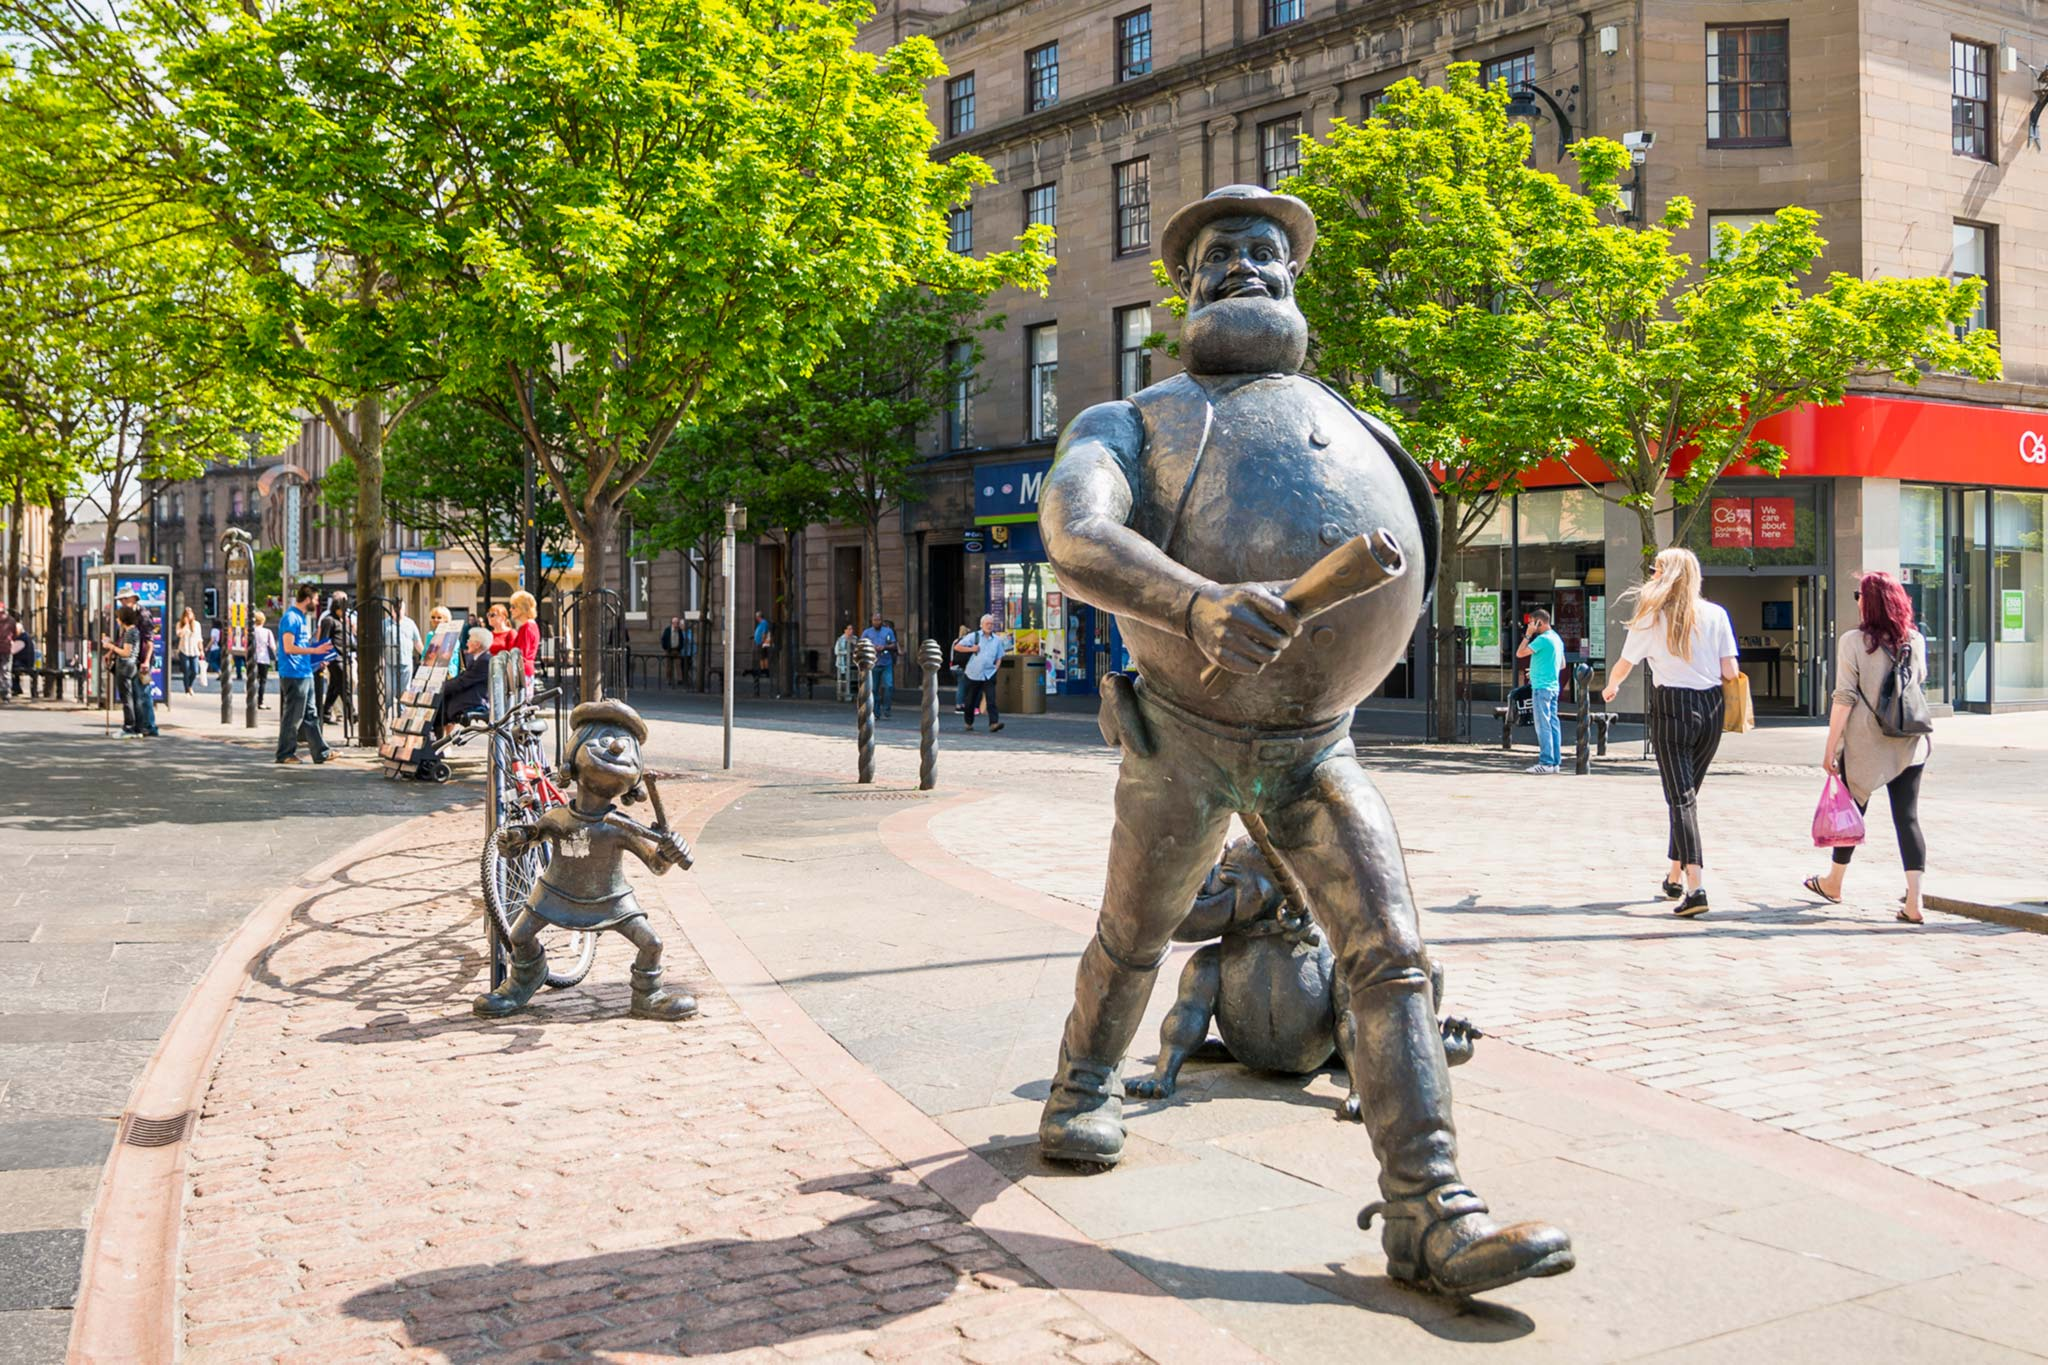 Statues of Dandy character, Desperate Dan and the Beano favourite, Minnie the Minx. In Dundee city centre.